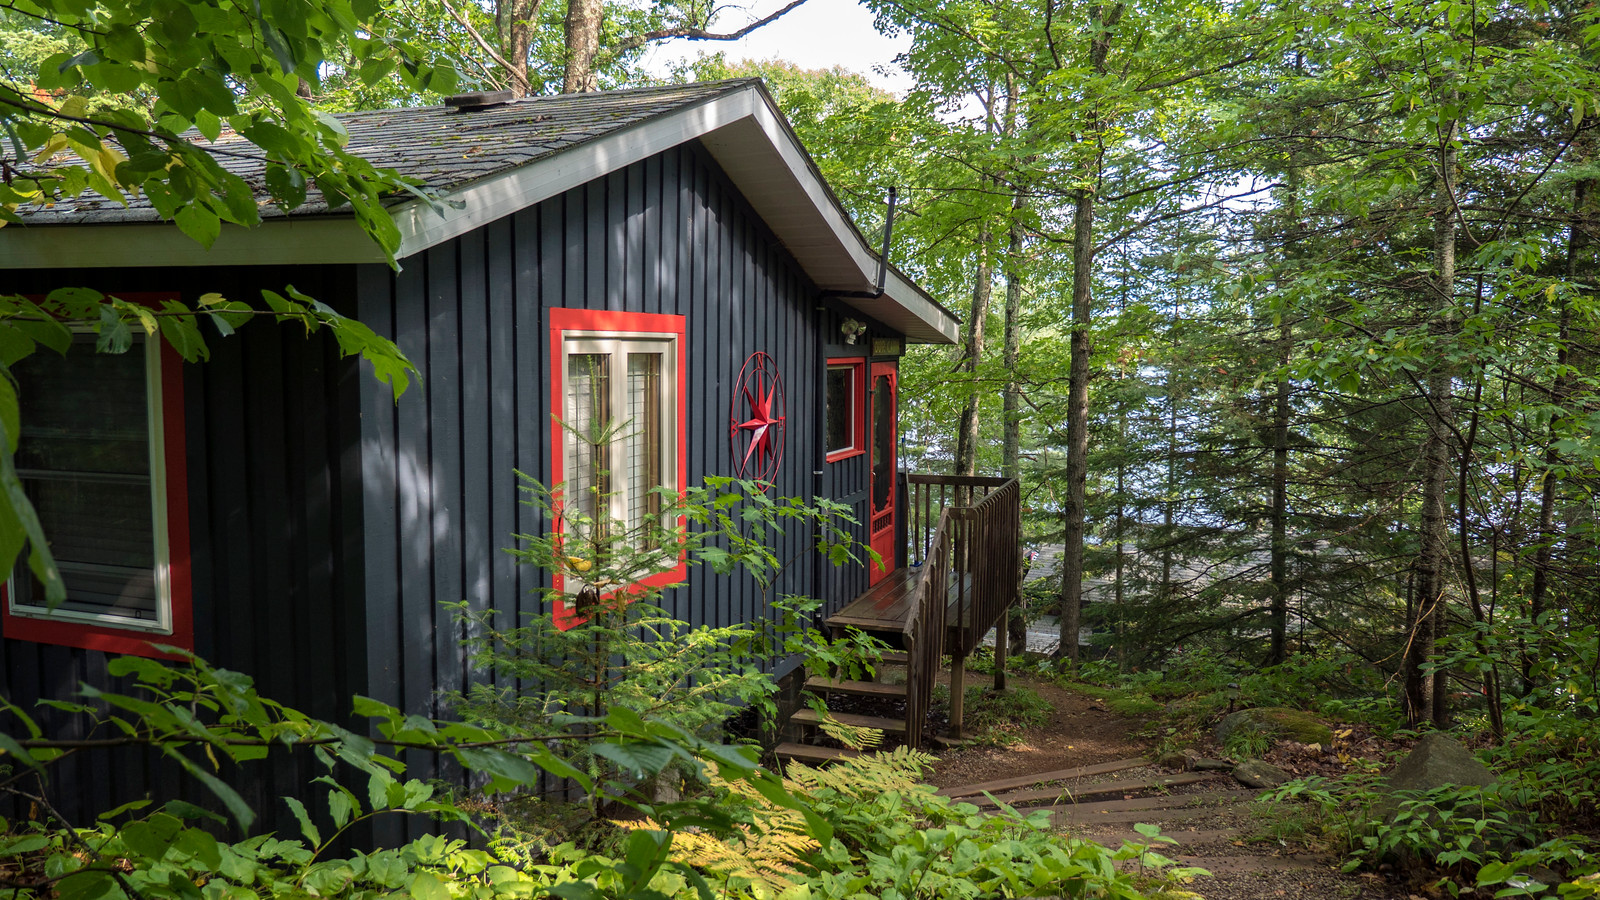 Quiet cottage in Muskoka, Dorest, Ontario, Canada. Cabin by the lake.